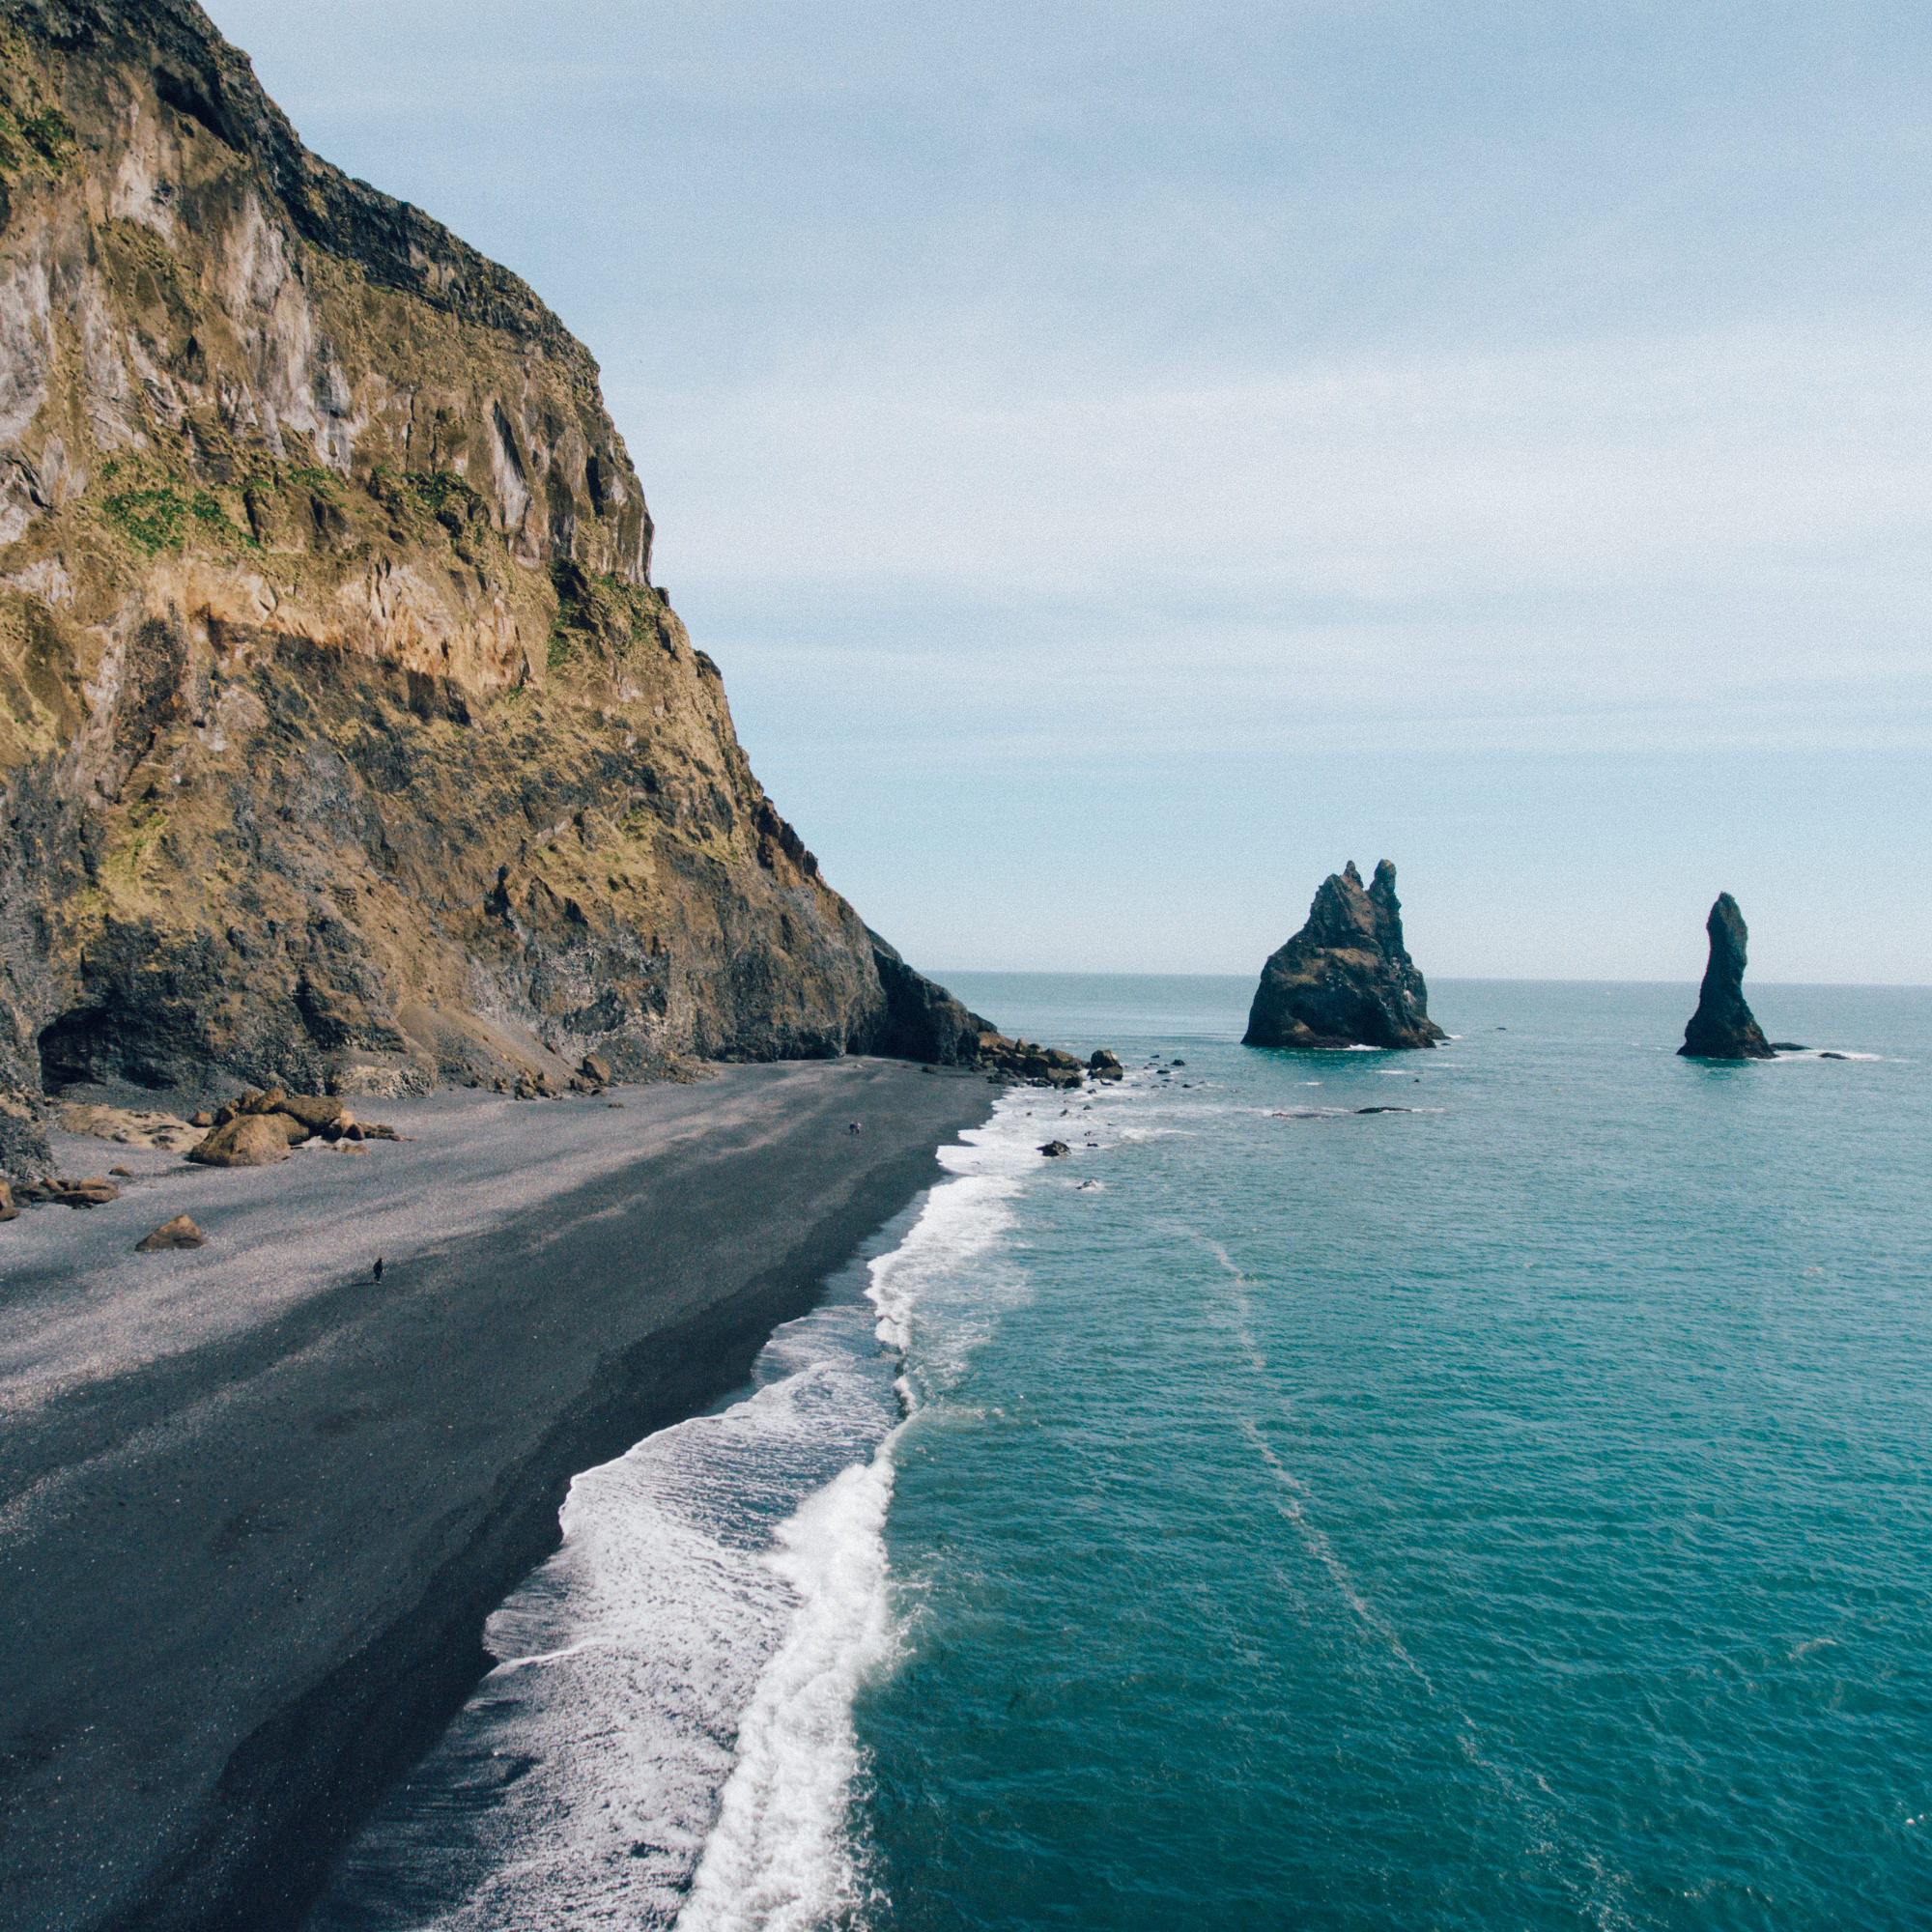 wrenee-iceland-part-1-39-vik-beach-drone.jpg